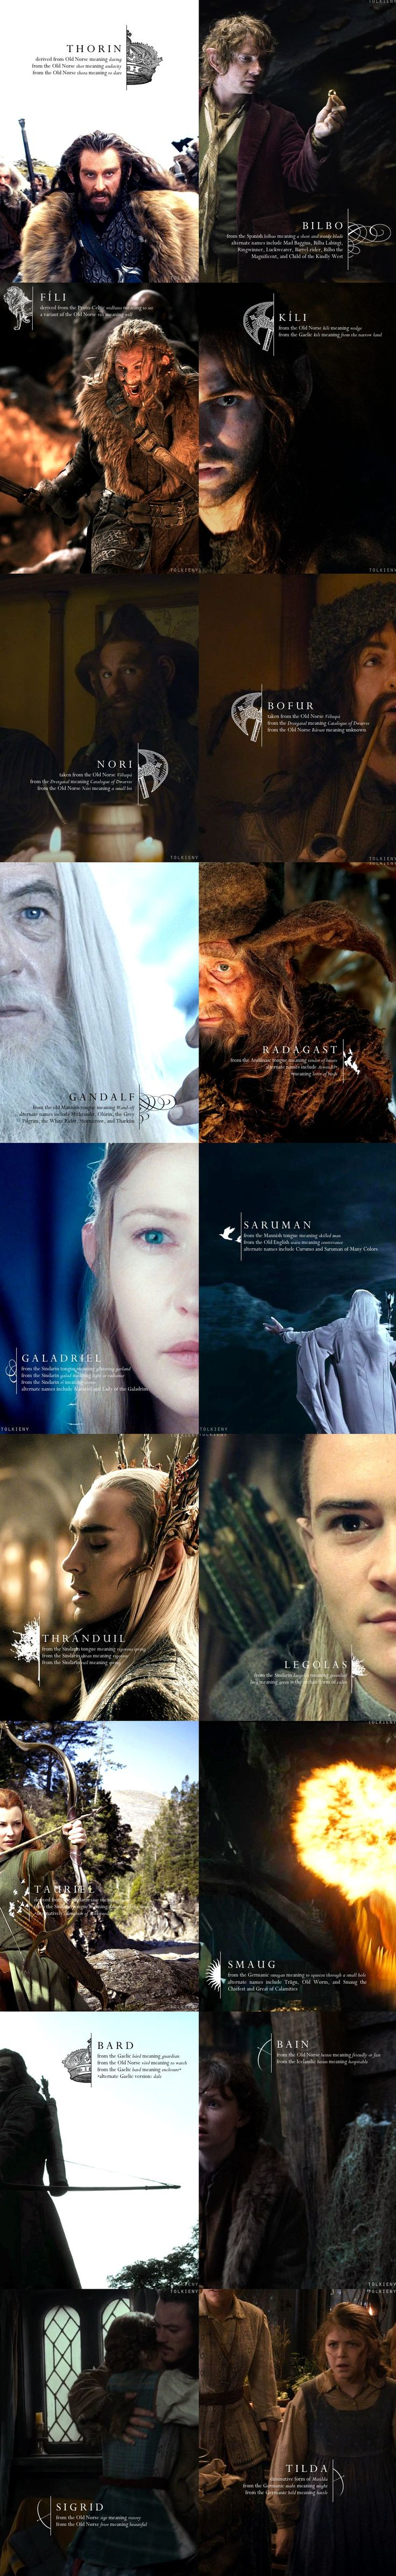 Meanings of Names in The Hobbit